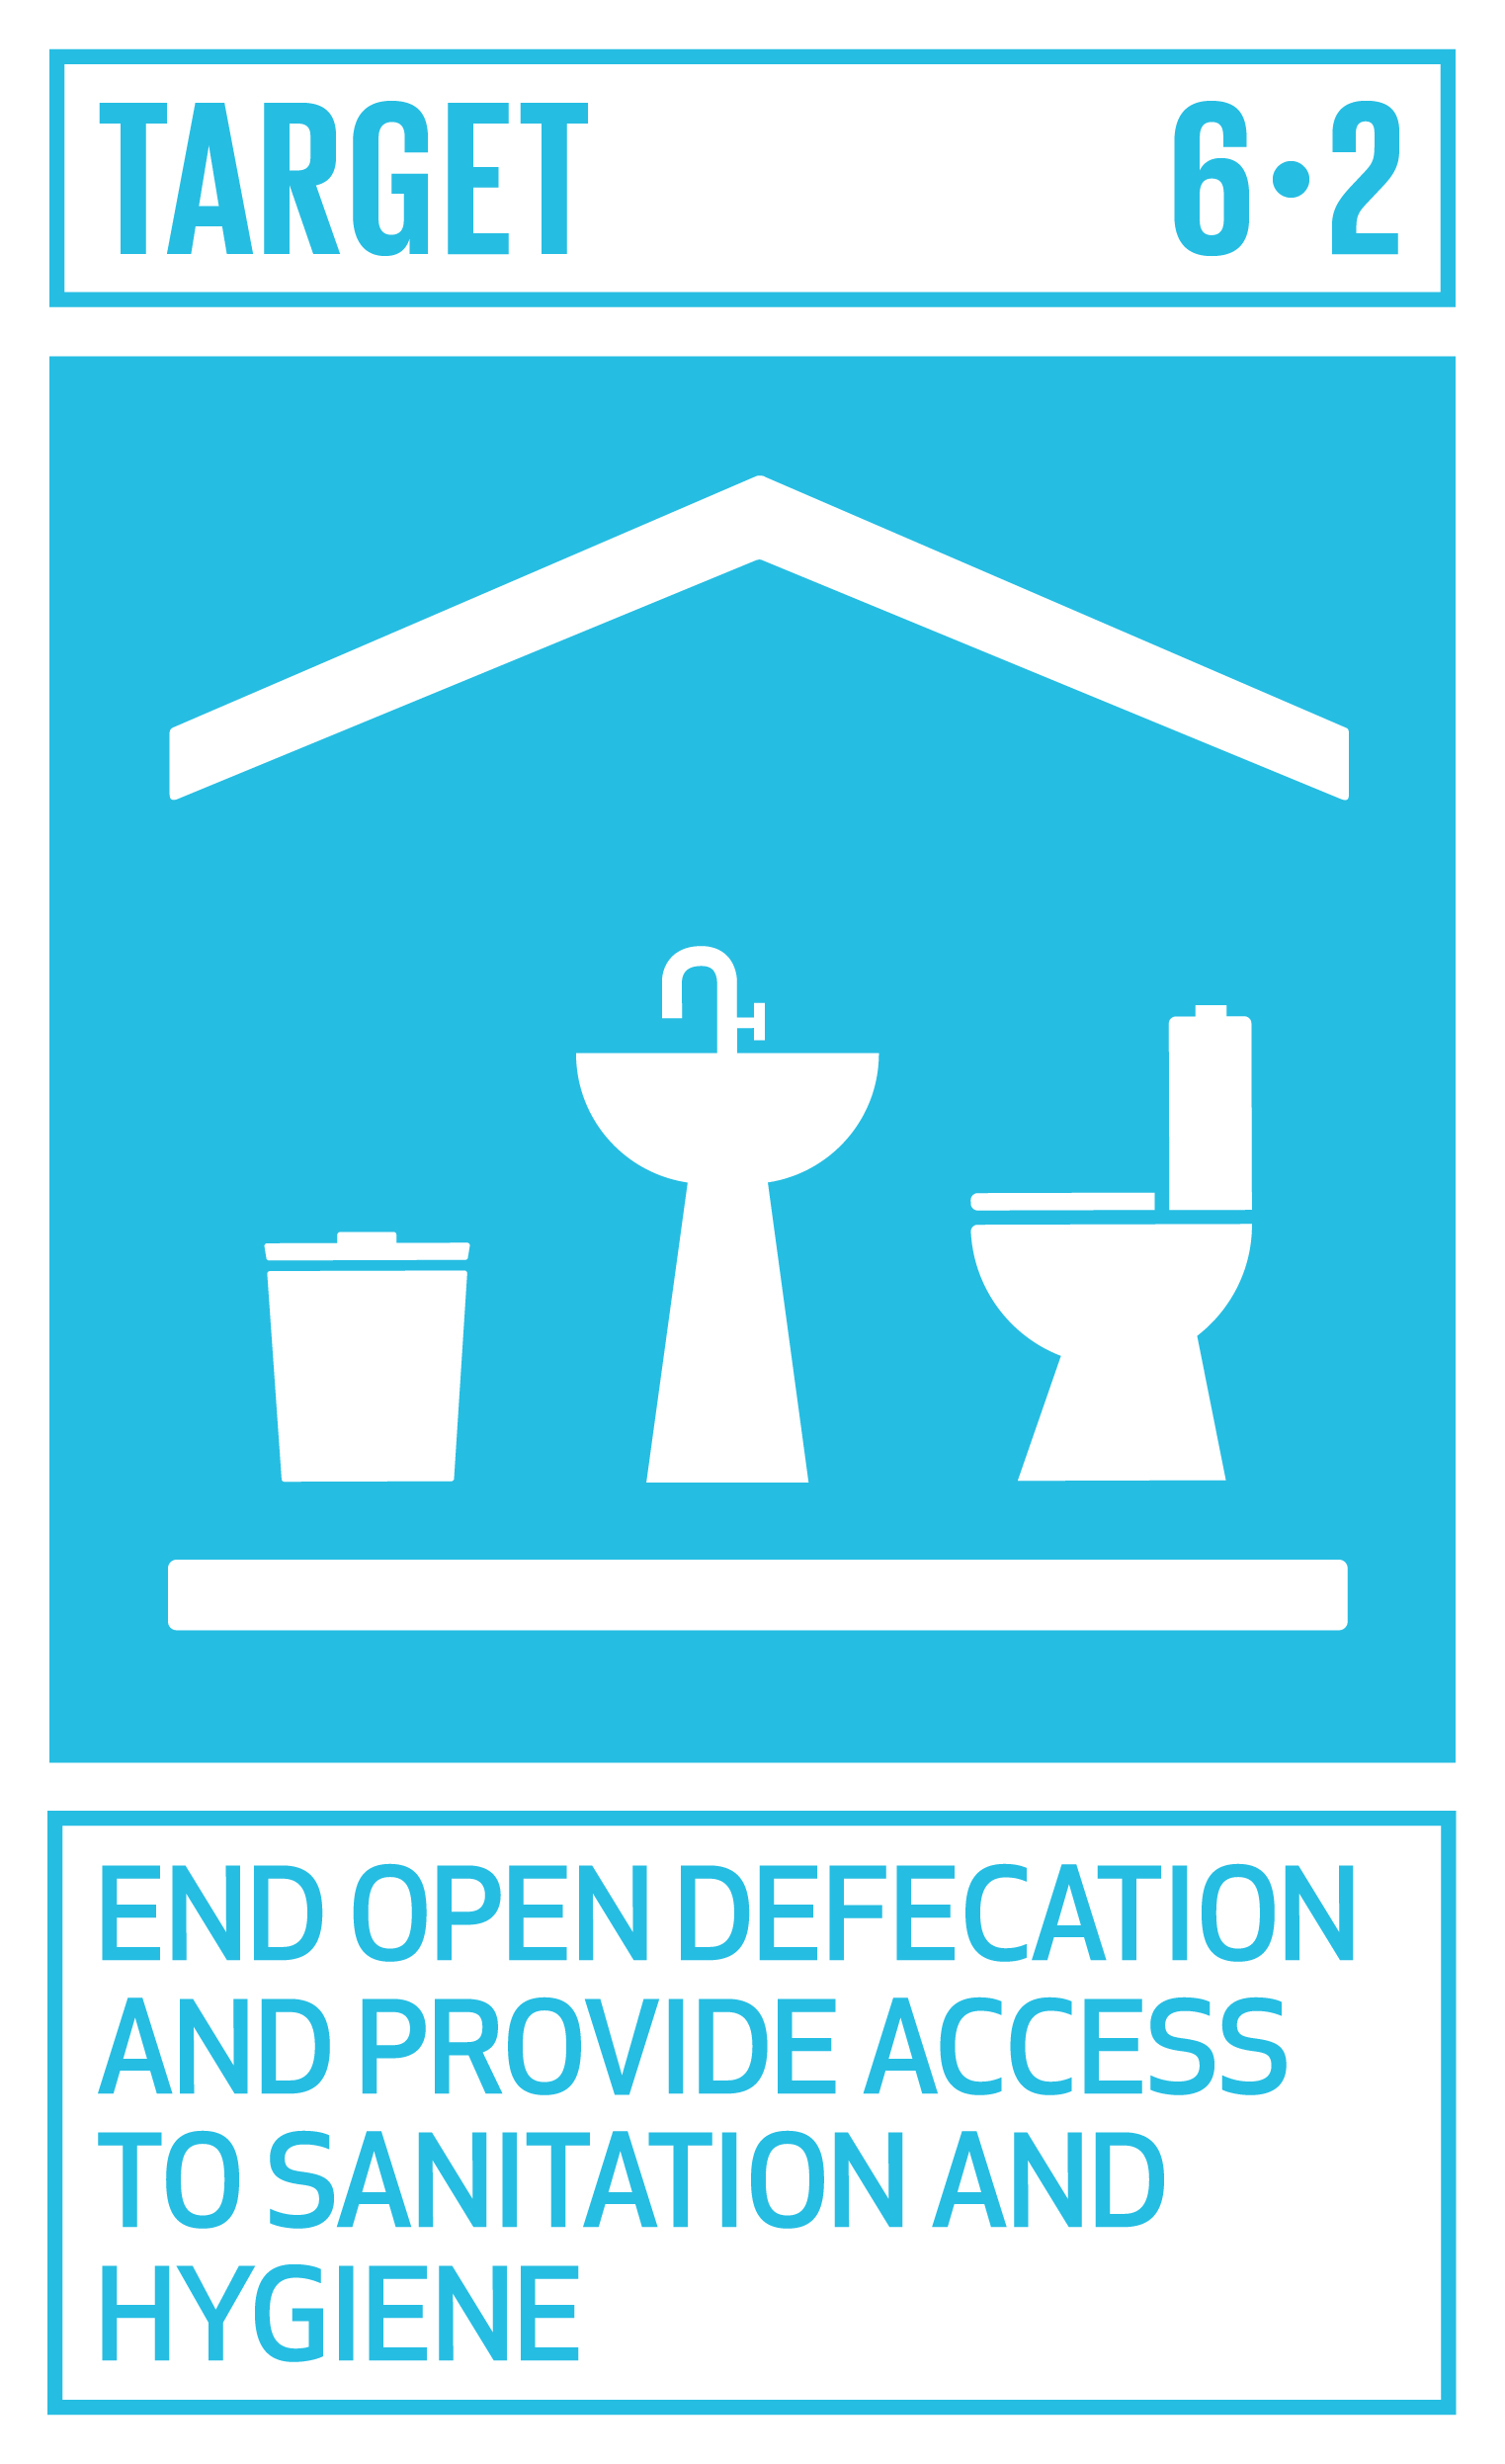 By 2030, achieve access to adequate and equitable sanitation and hygiene for all and end open defecation, paying special attention to the needs of women and girls and those in vulnerable situations.   INDICATOR    6.2.1  Proportion of population using safely managed sanitation services, including a hand-washing facility with soap and water